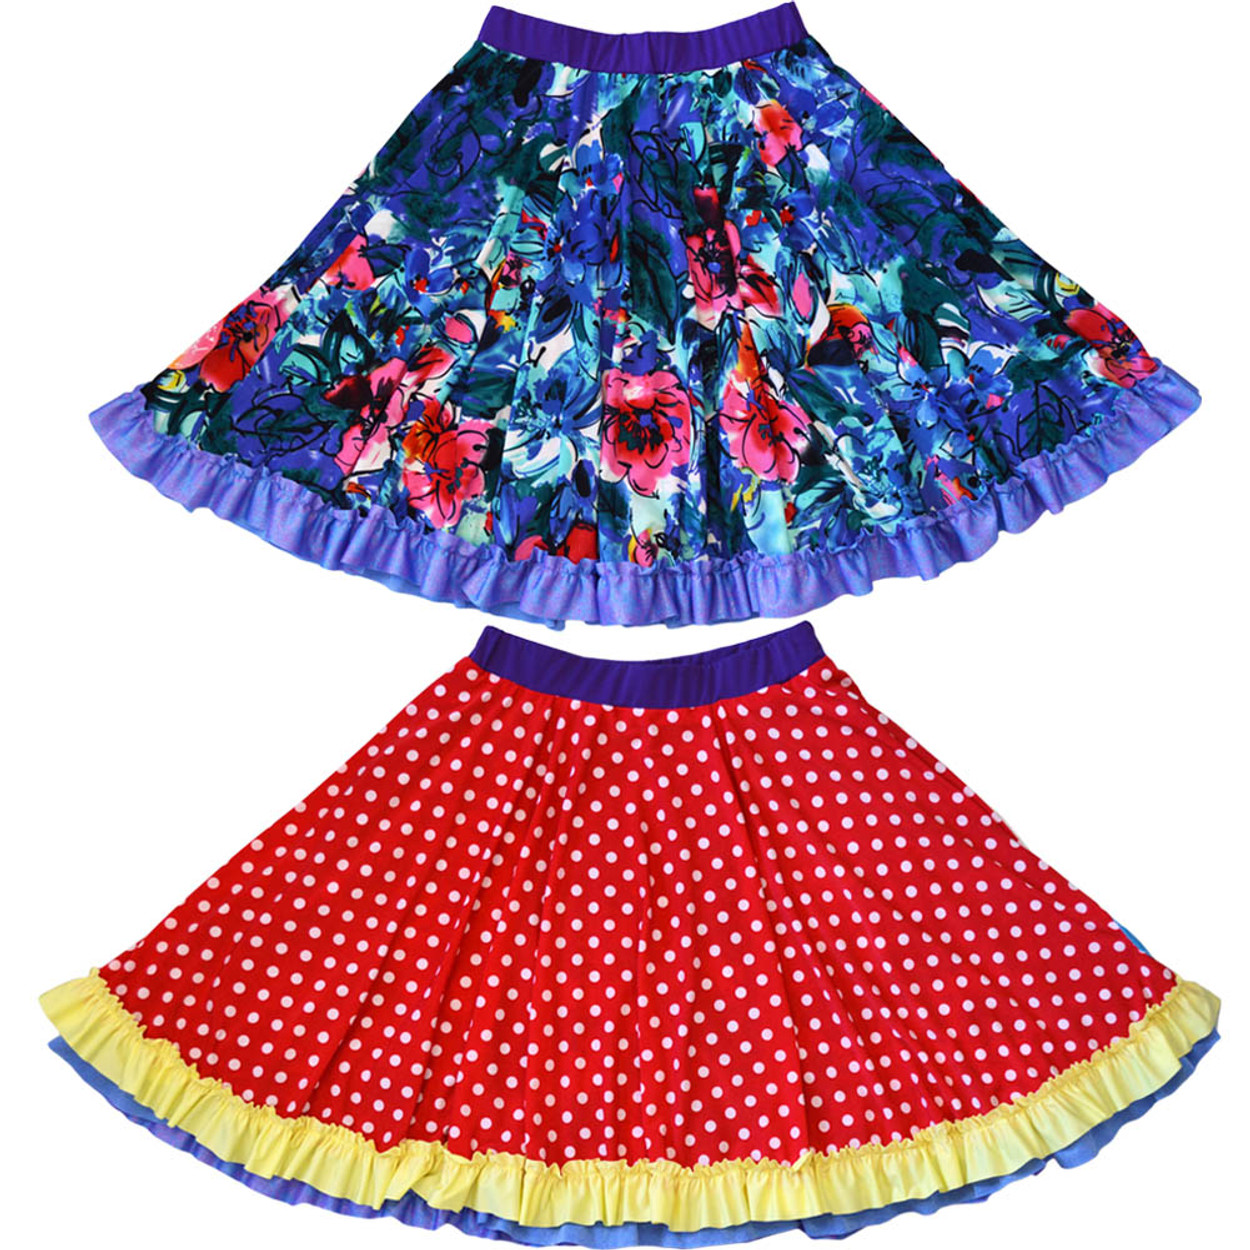 089bcf2c6 Twirly Girl Spinning Skirts for Girls Reversible Fun Pretty Party ...